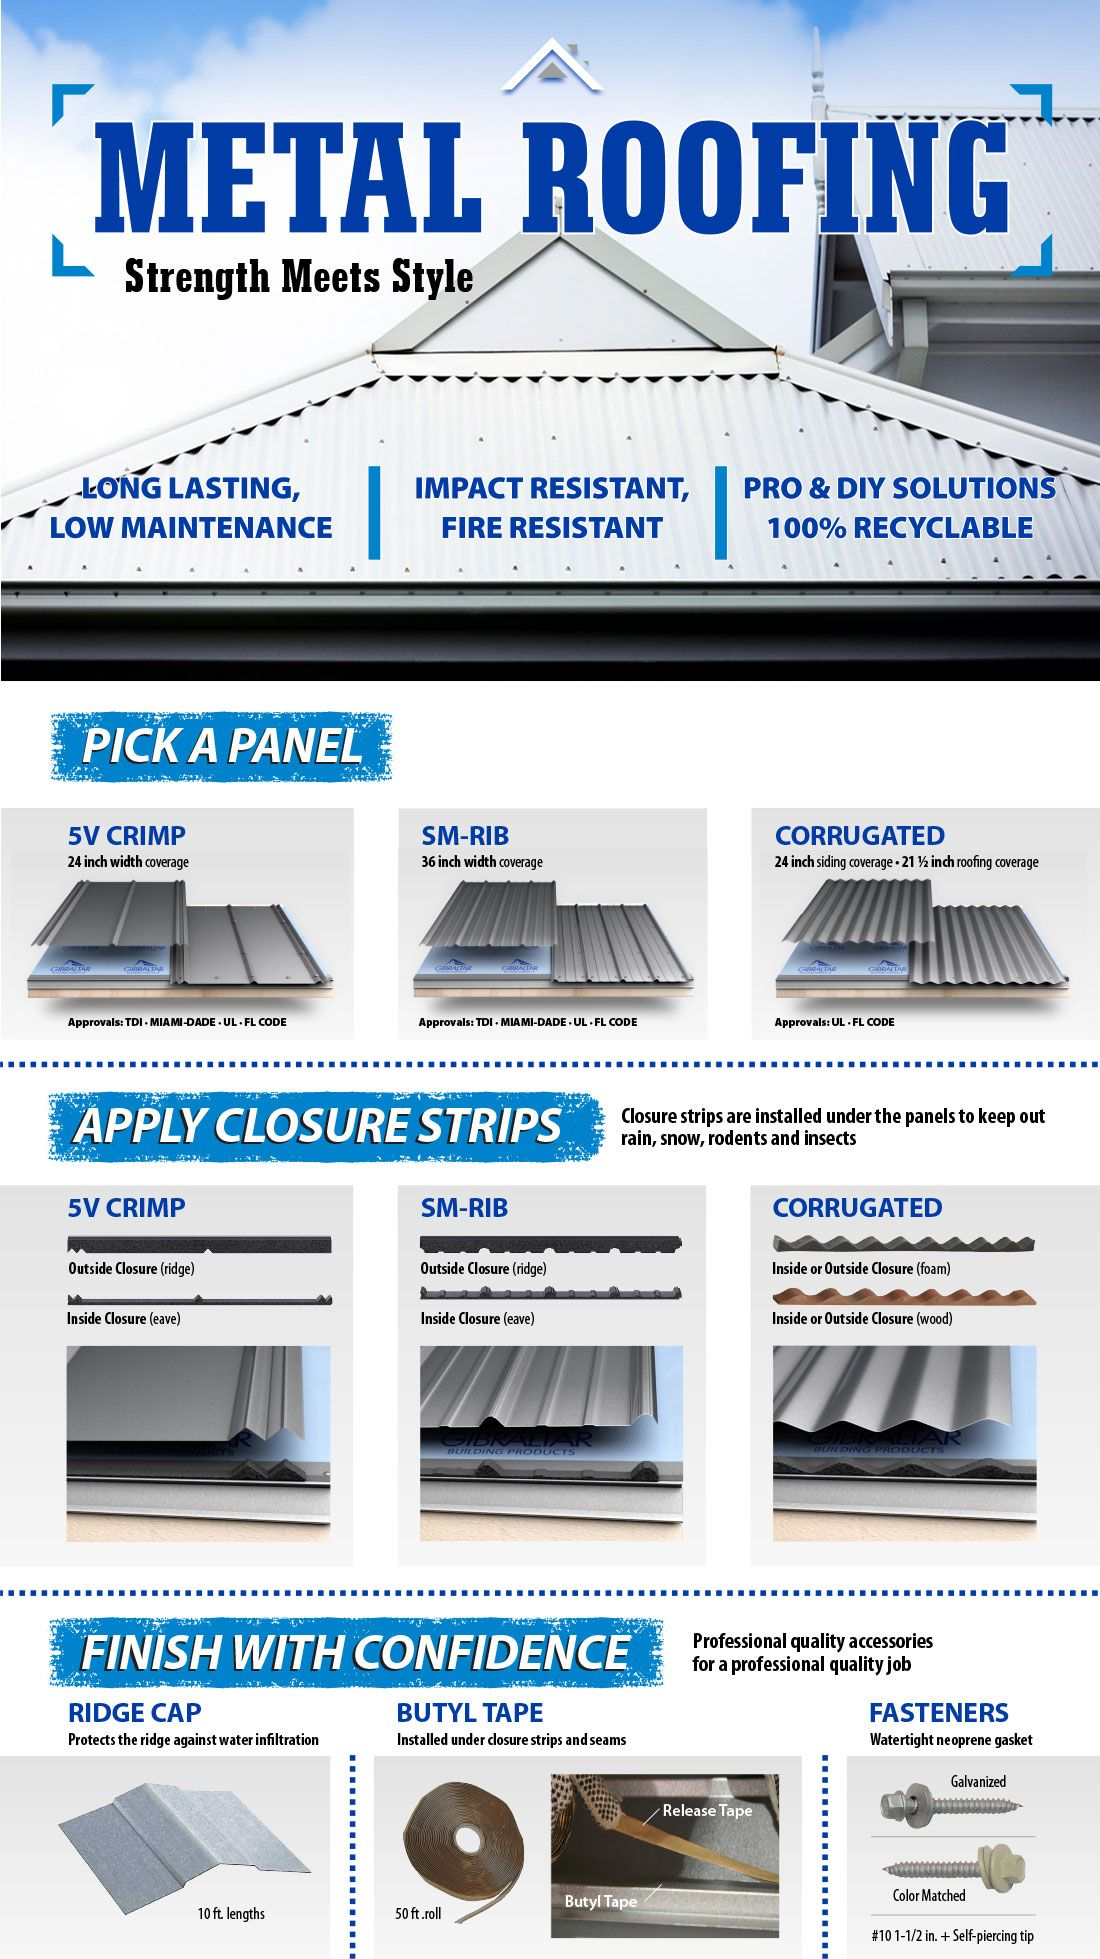 Gibraltar Building Products 10 Ft Corrugated Galvanized Steel Utility Gauge Roof Panel 13504 The Home Depot In 2020 Roof Panels Steel Roof Panels Corrugated Roofing